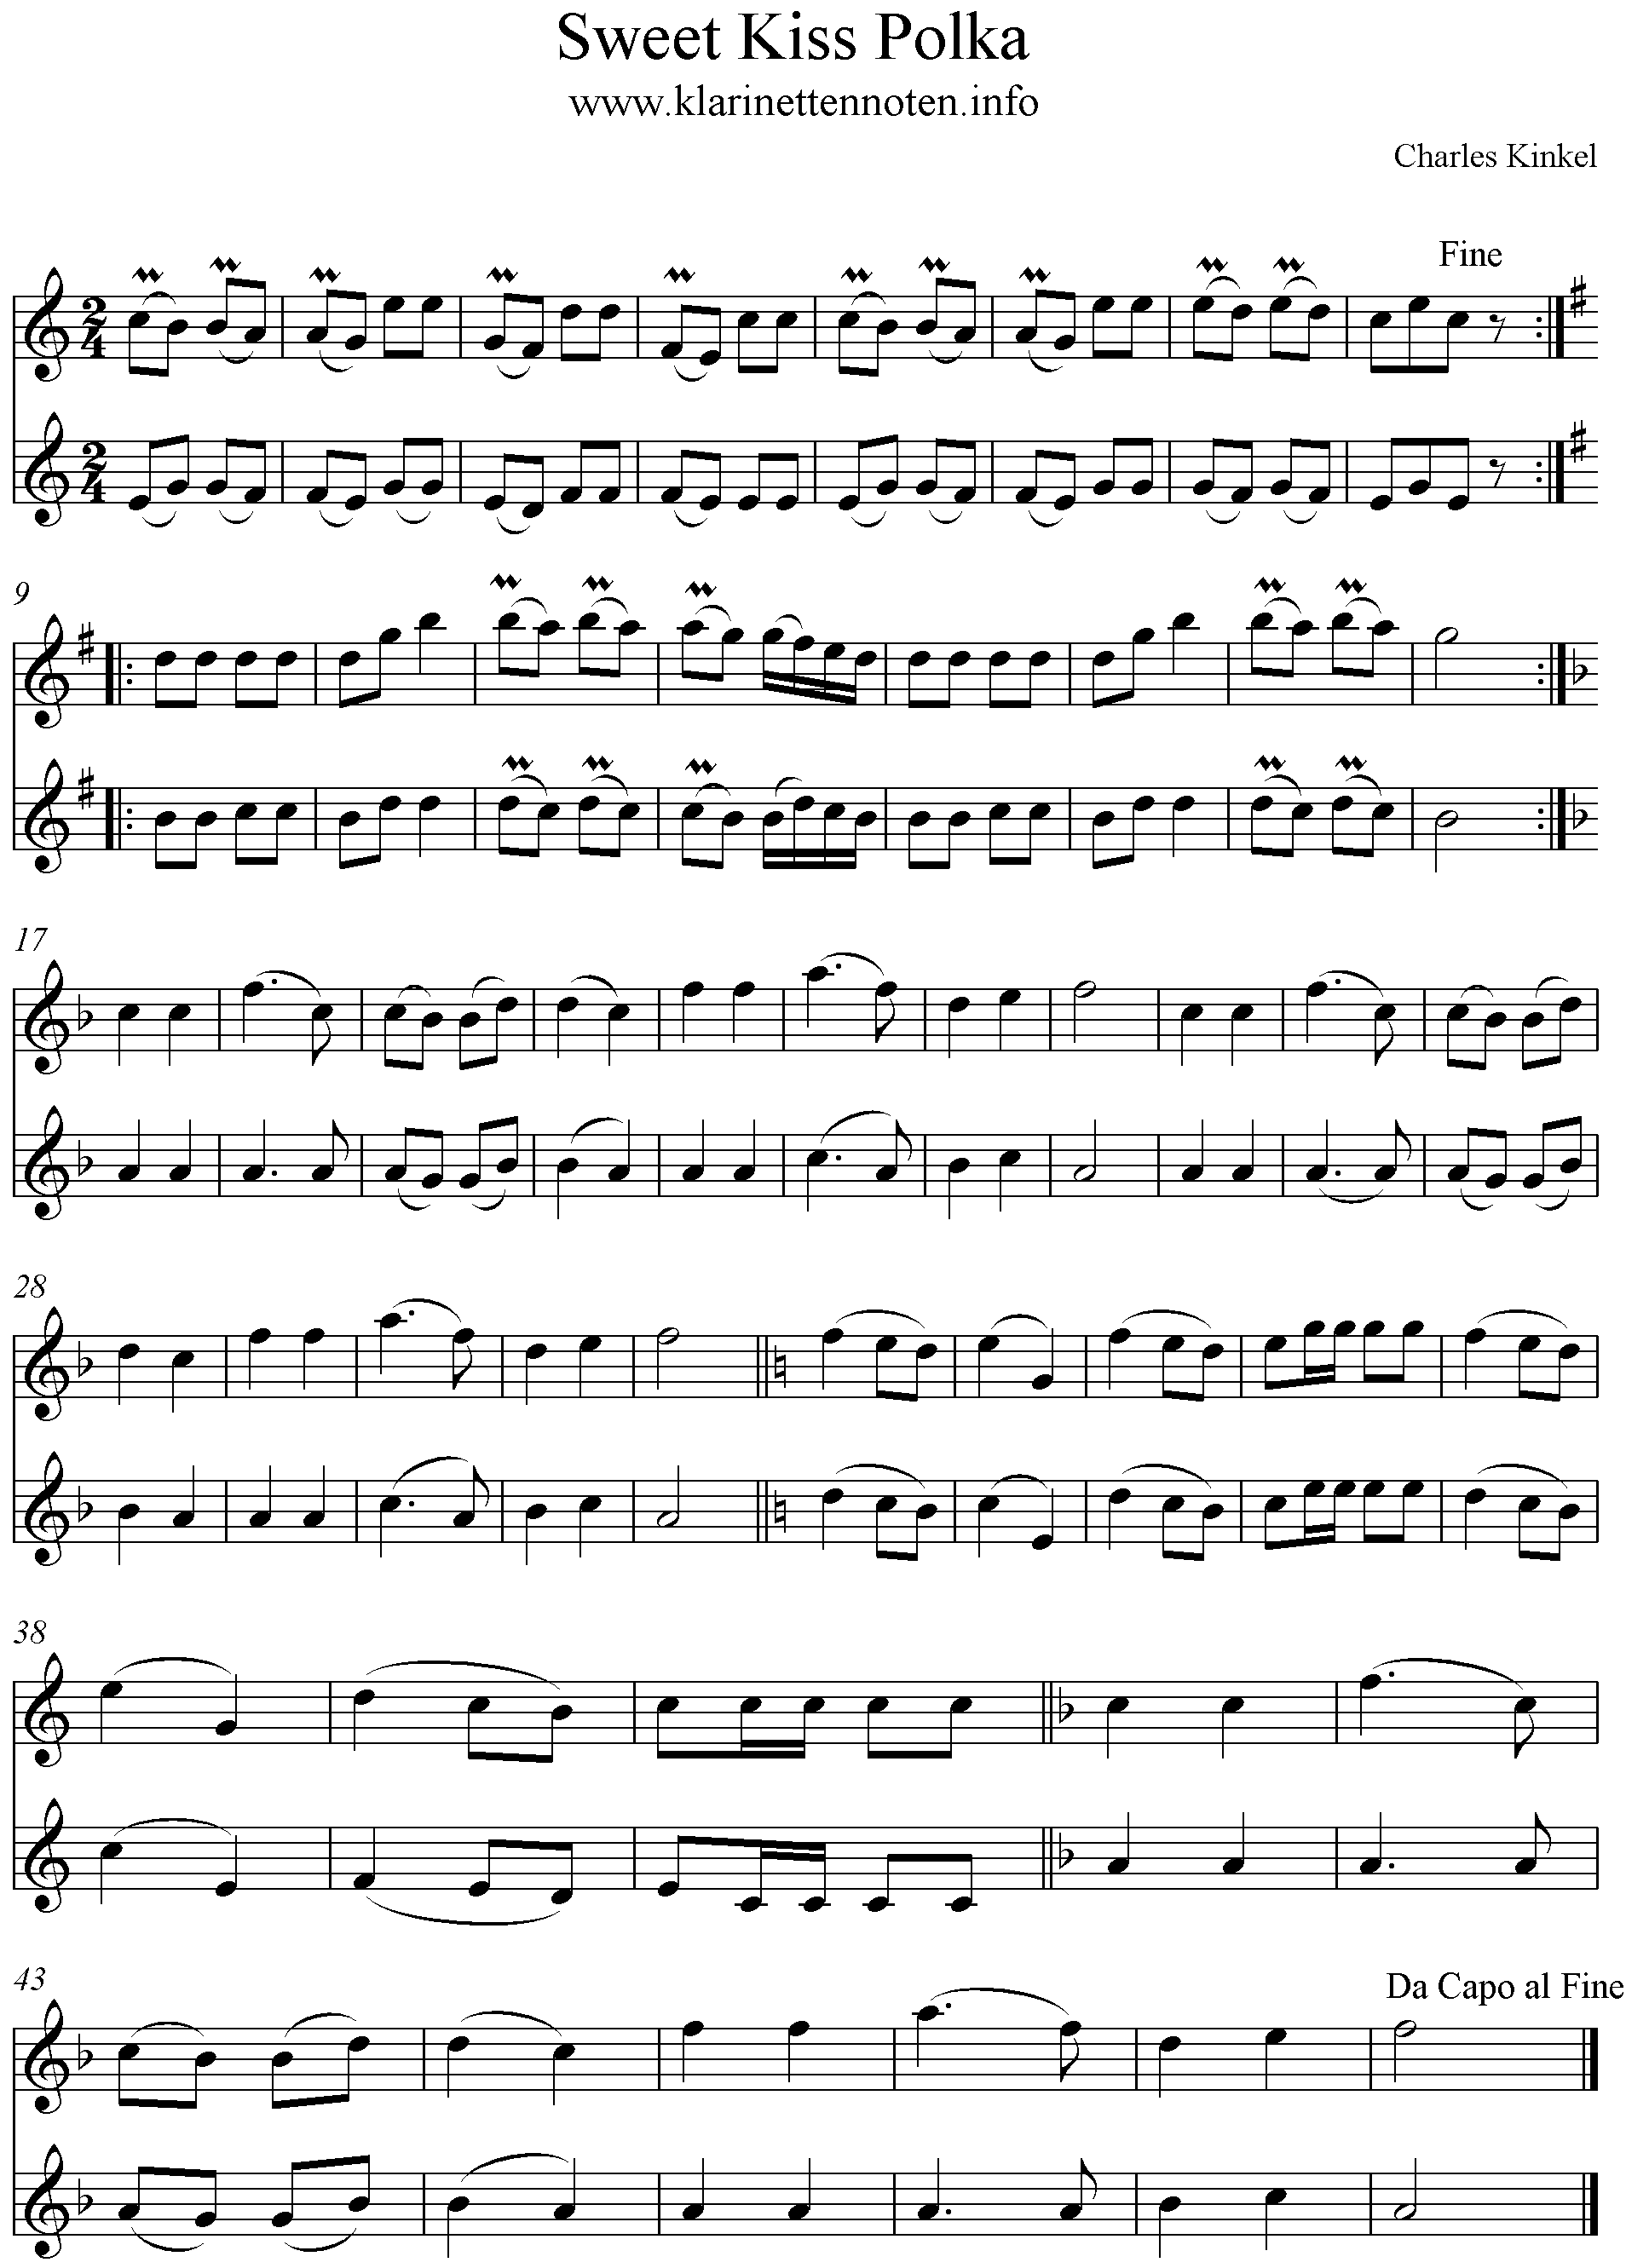 Sweet Kiss Polka Musicsheet for Clarinet Klarinettennoten, Duo